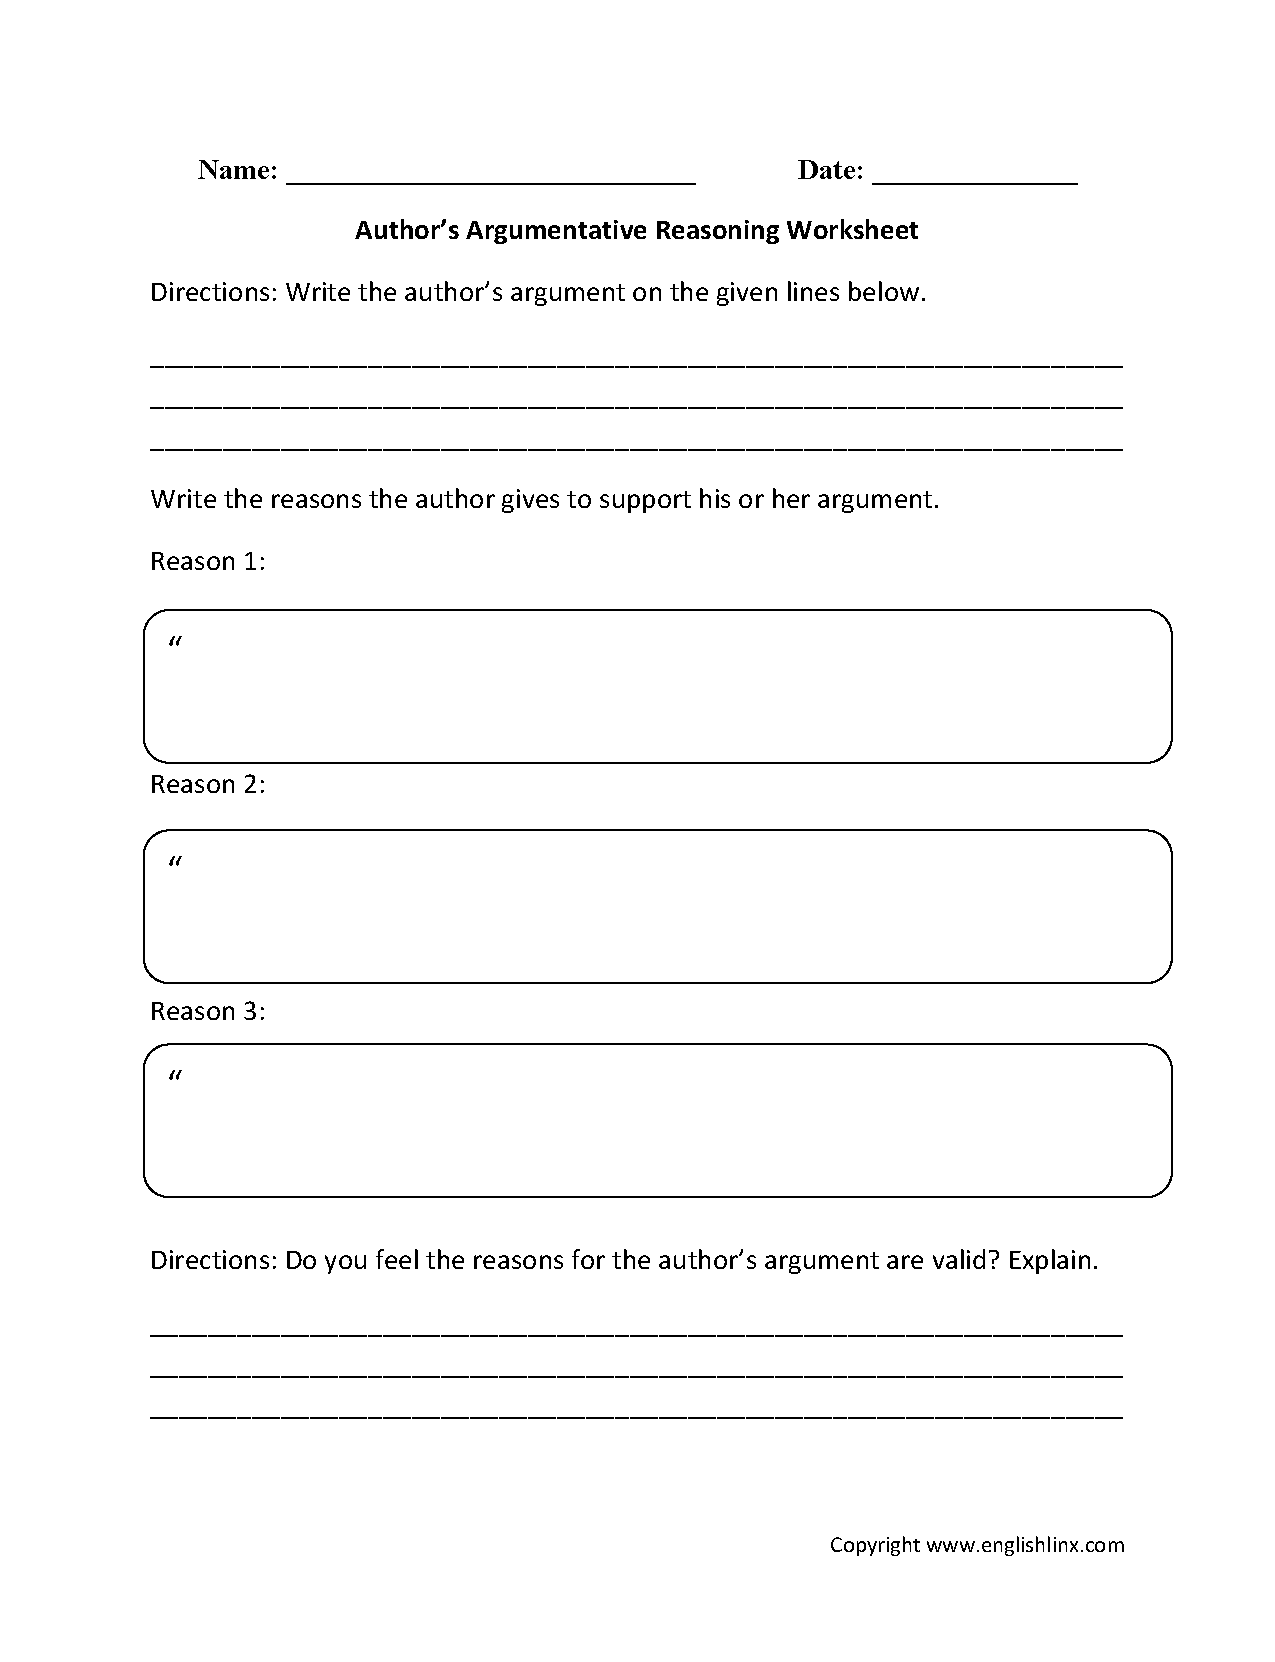 Worksheet 11th Grade English Worksheets Grass Fedjp